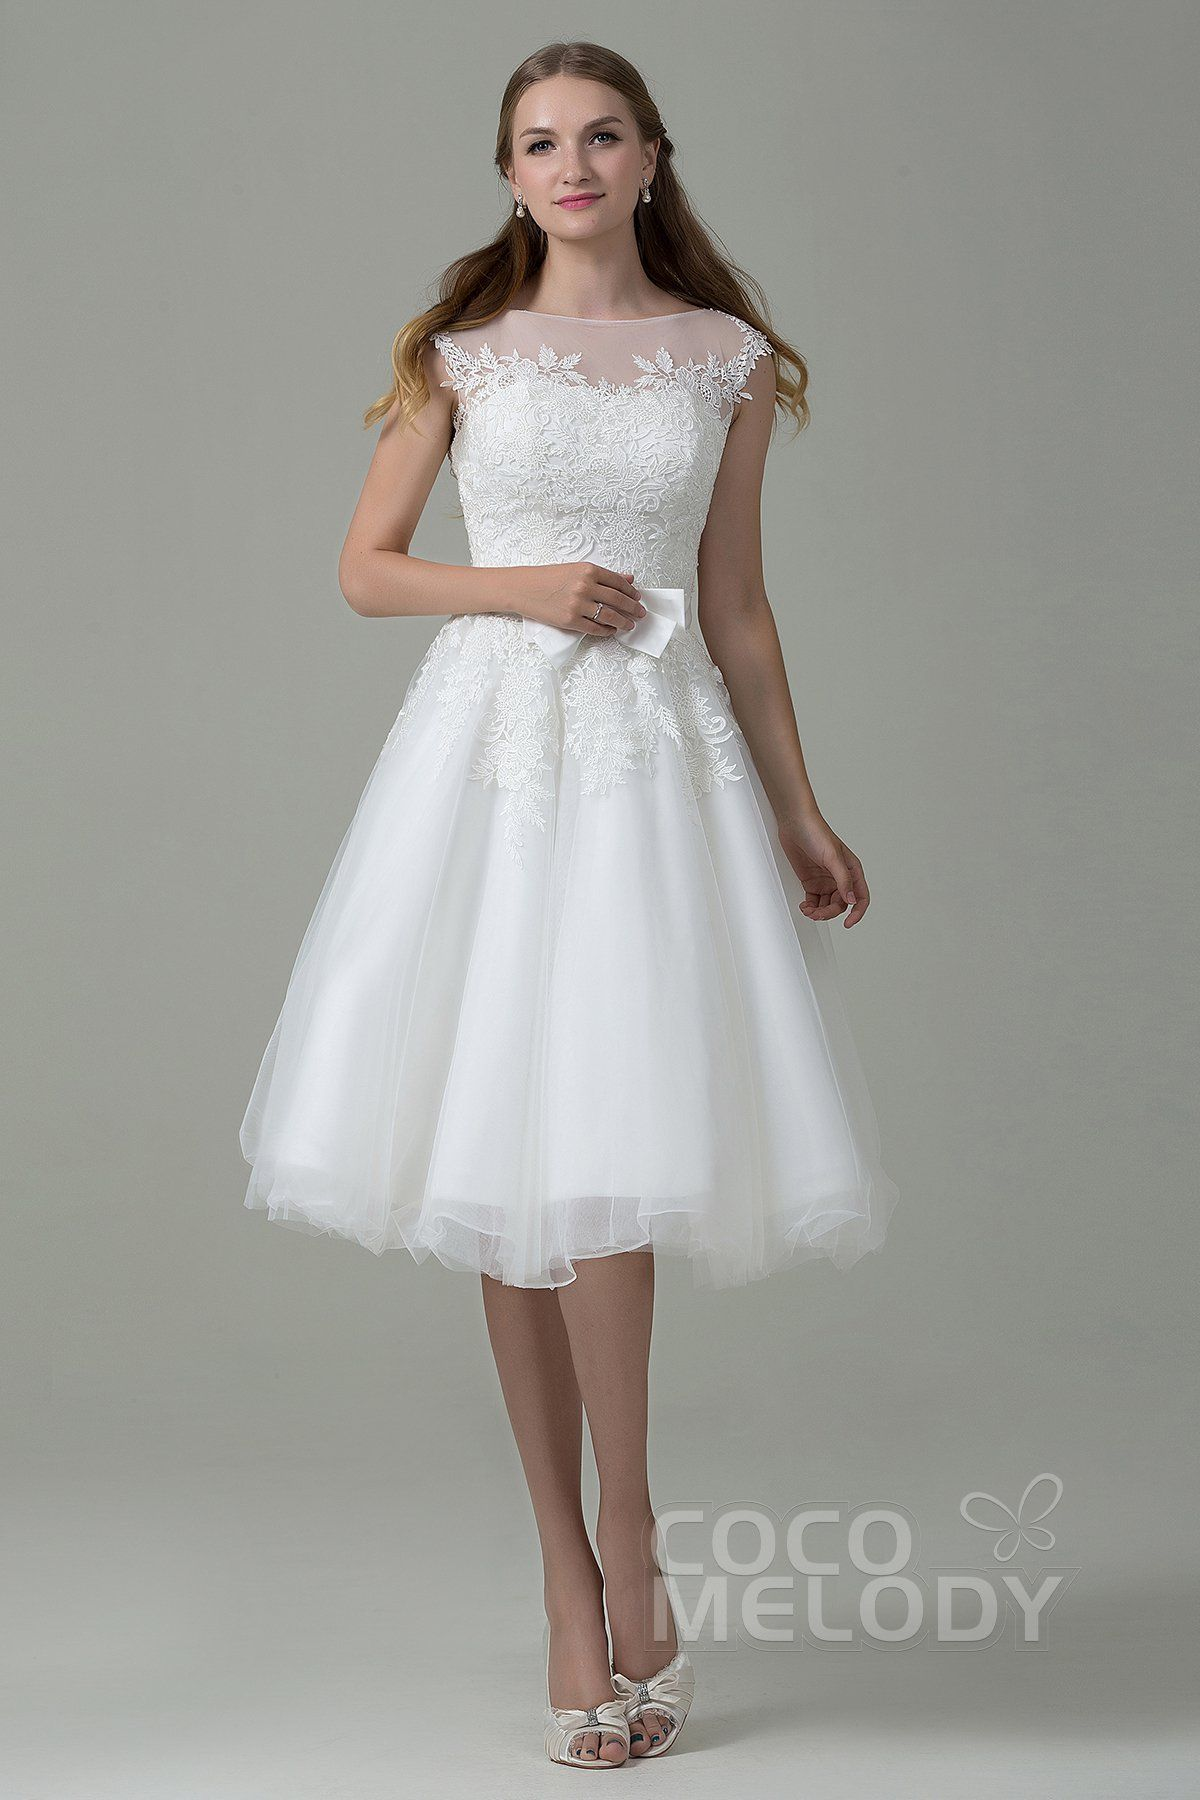 Lace dresses for wedding reception  Sweet ALine Illusion Natural Knee Length Tulle and Lace Ivory